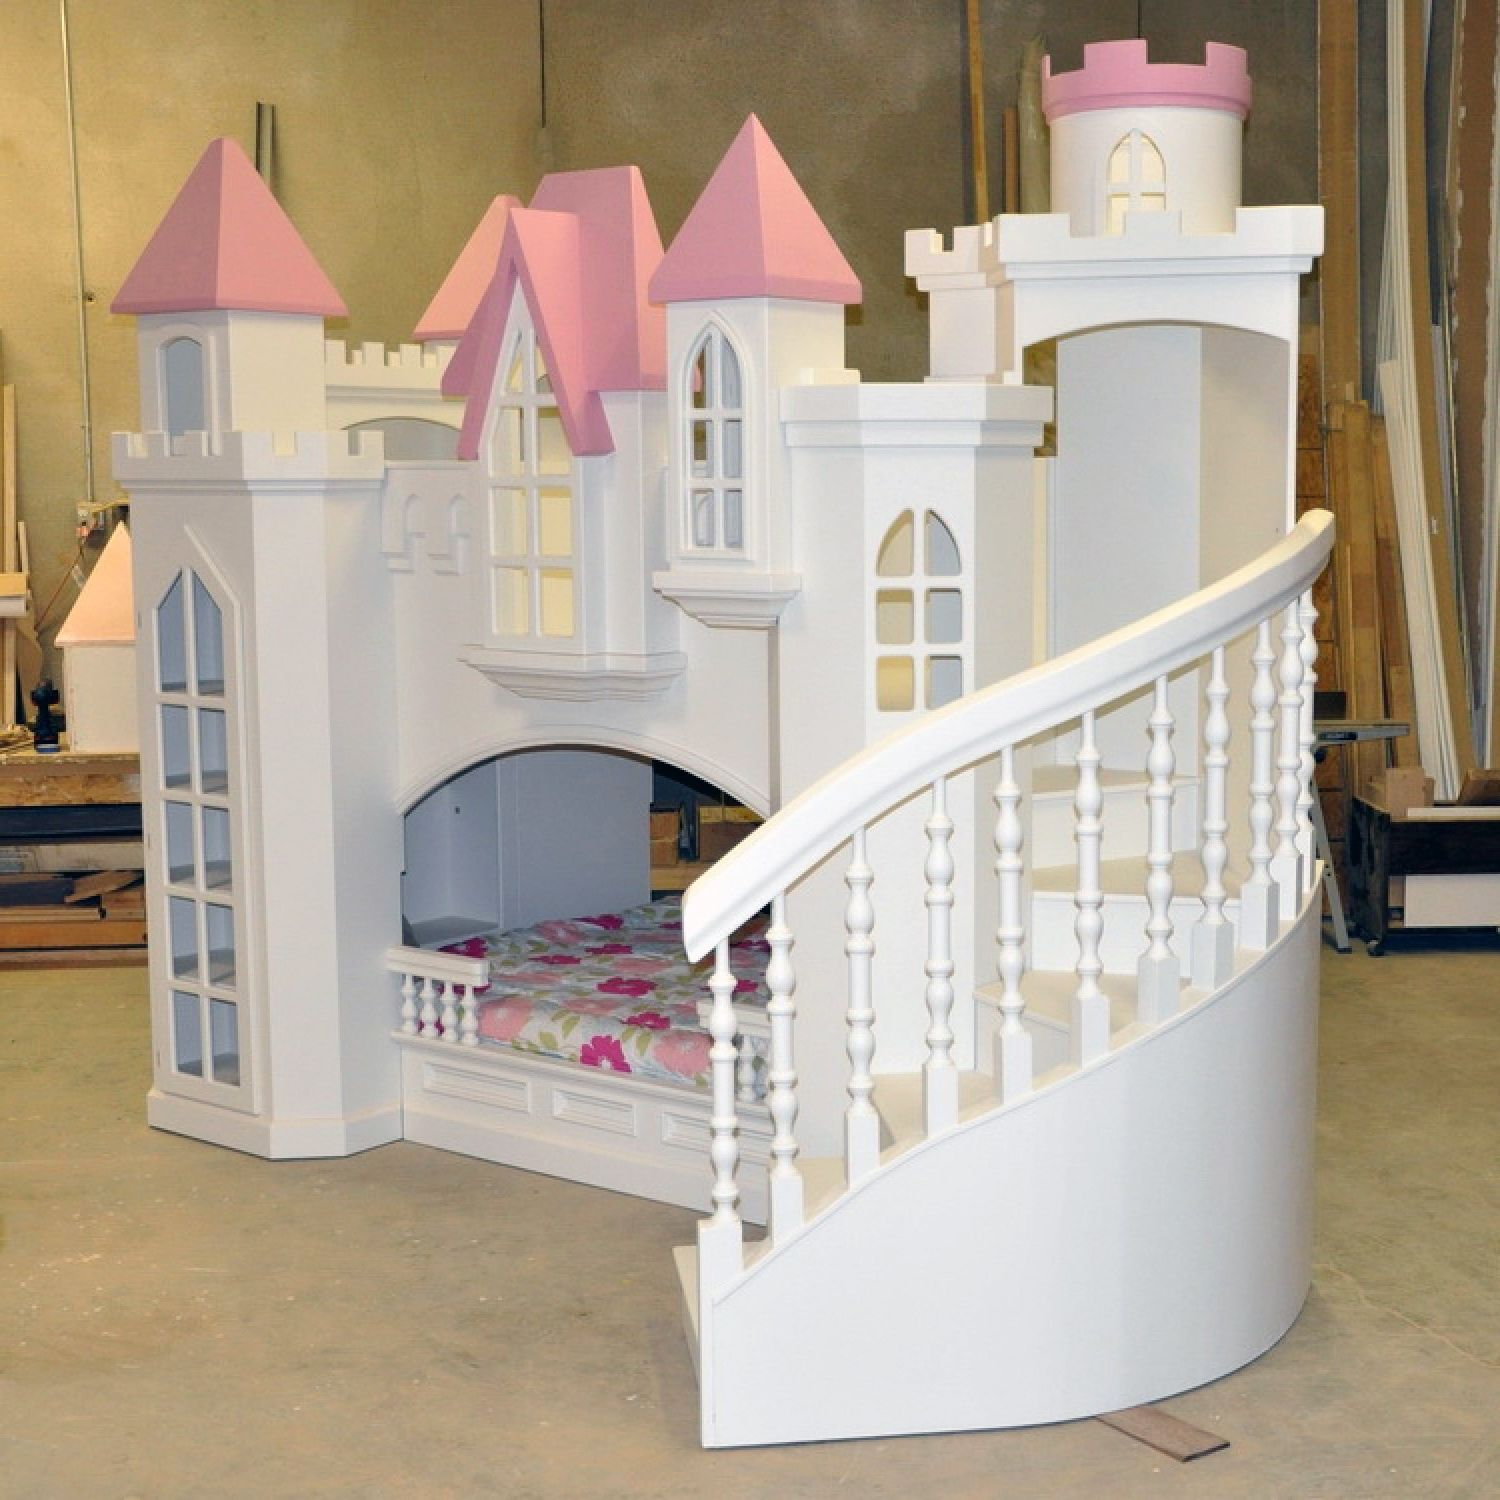 Bedroom , Unique Bunk Beds For Kids Bedroom Design Ideas : Excellent Castle Bunk  Bed For Girls Bedroom Idea